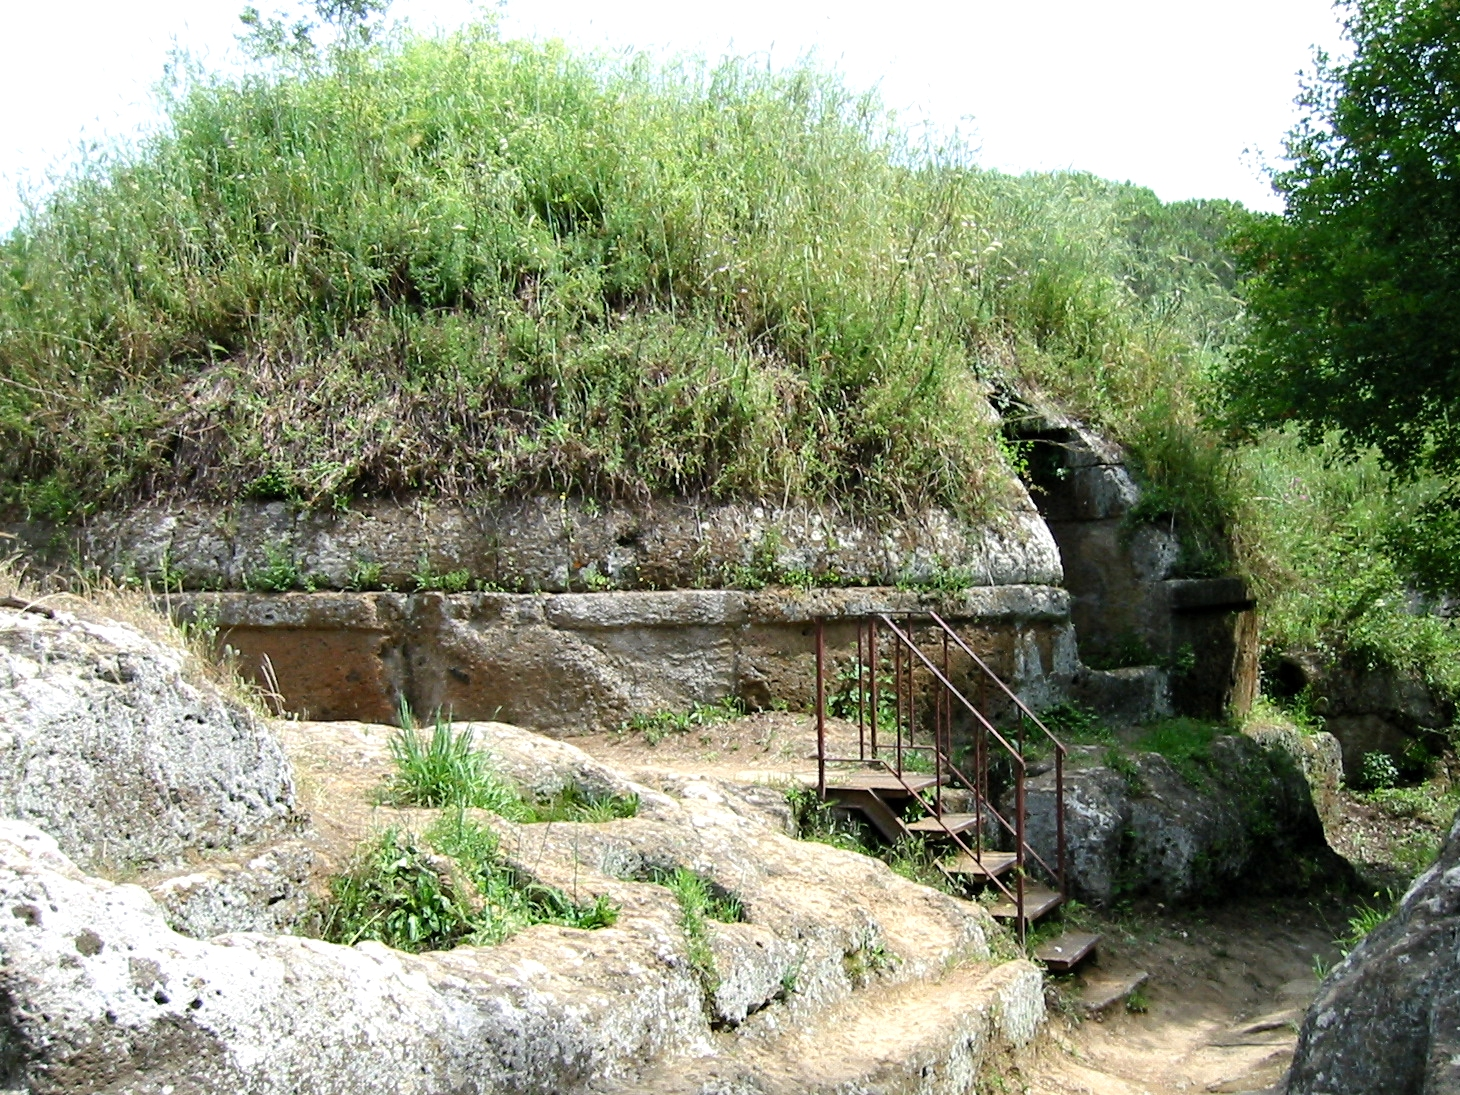 Wikipedia public domain image of a tumulus grave at the necropolis of Banditacci.